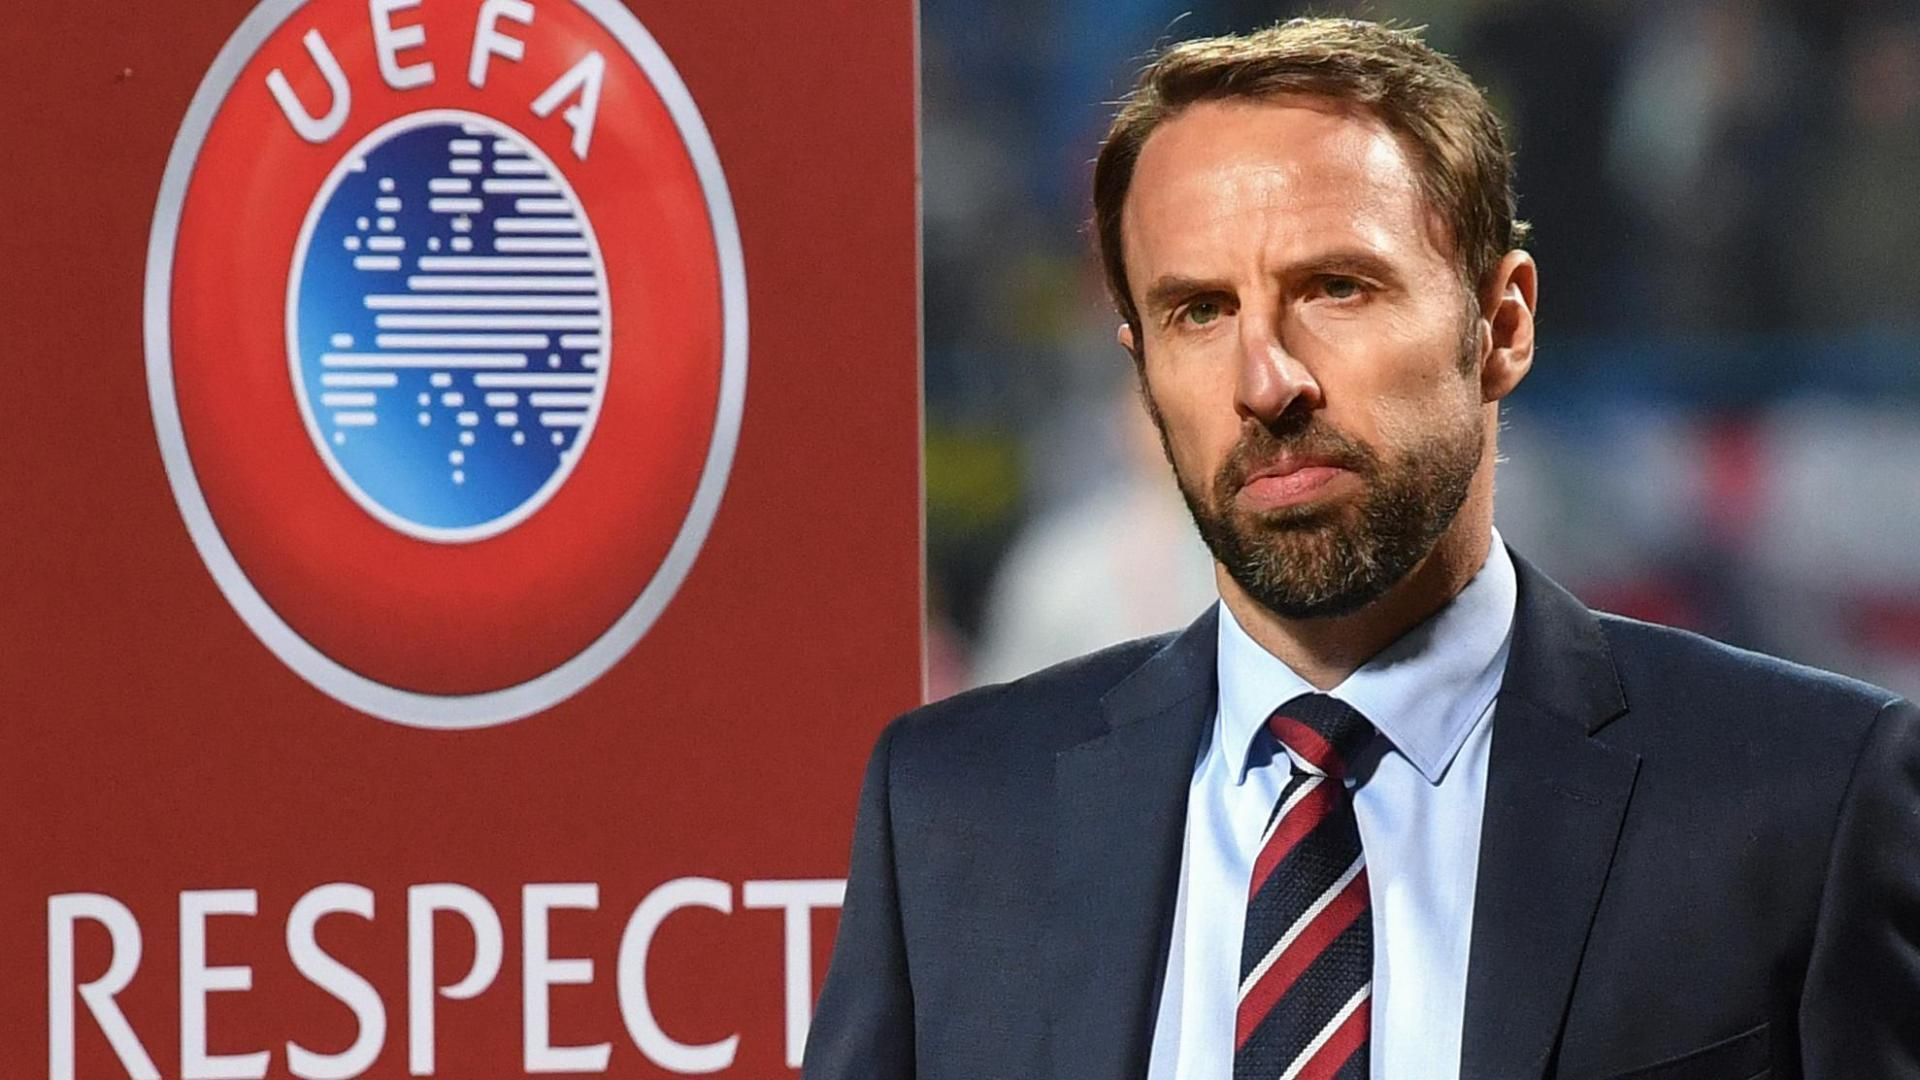 England players don't trust system to tackle racism - Southgate 2